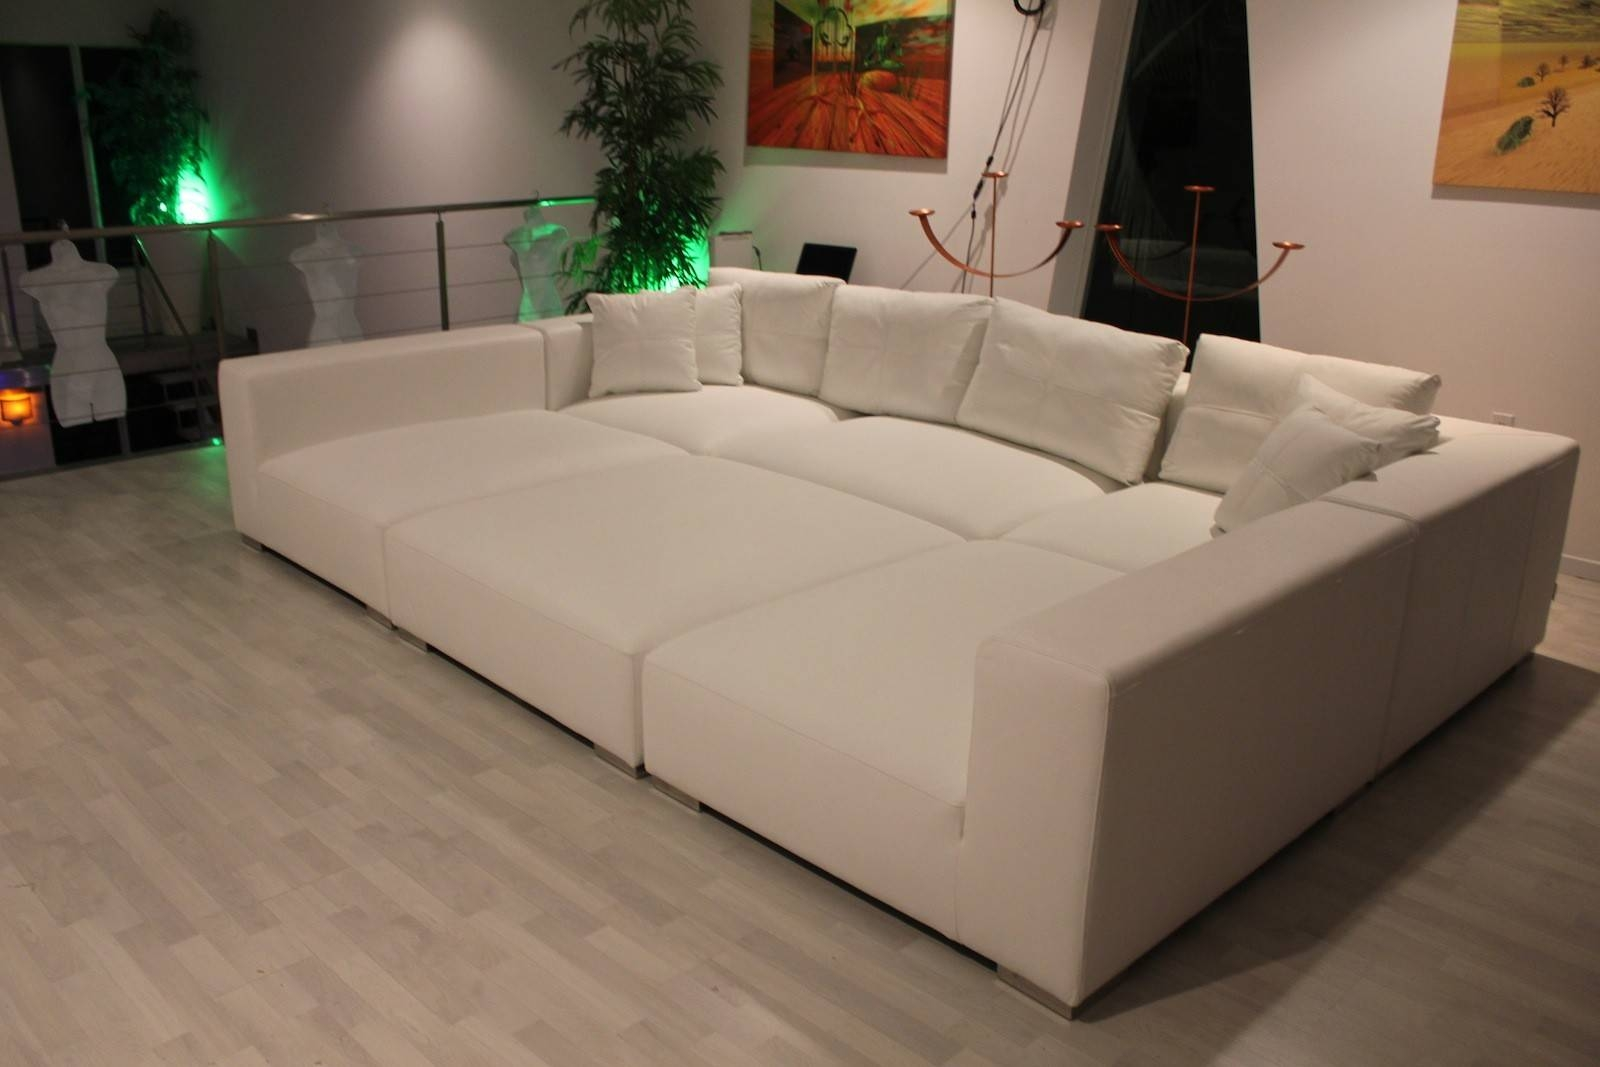 Amazing Pit Sectional Sofa 54 For Your Closeout Sectional Sofas inside Closeout Sectional Sofas (Image 1 of 30)